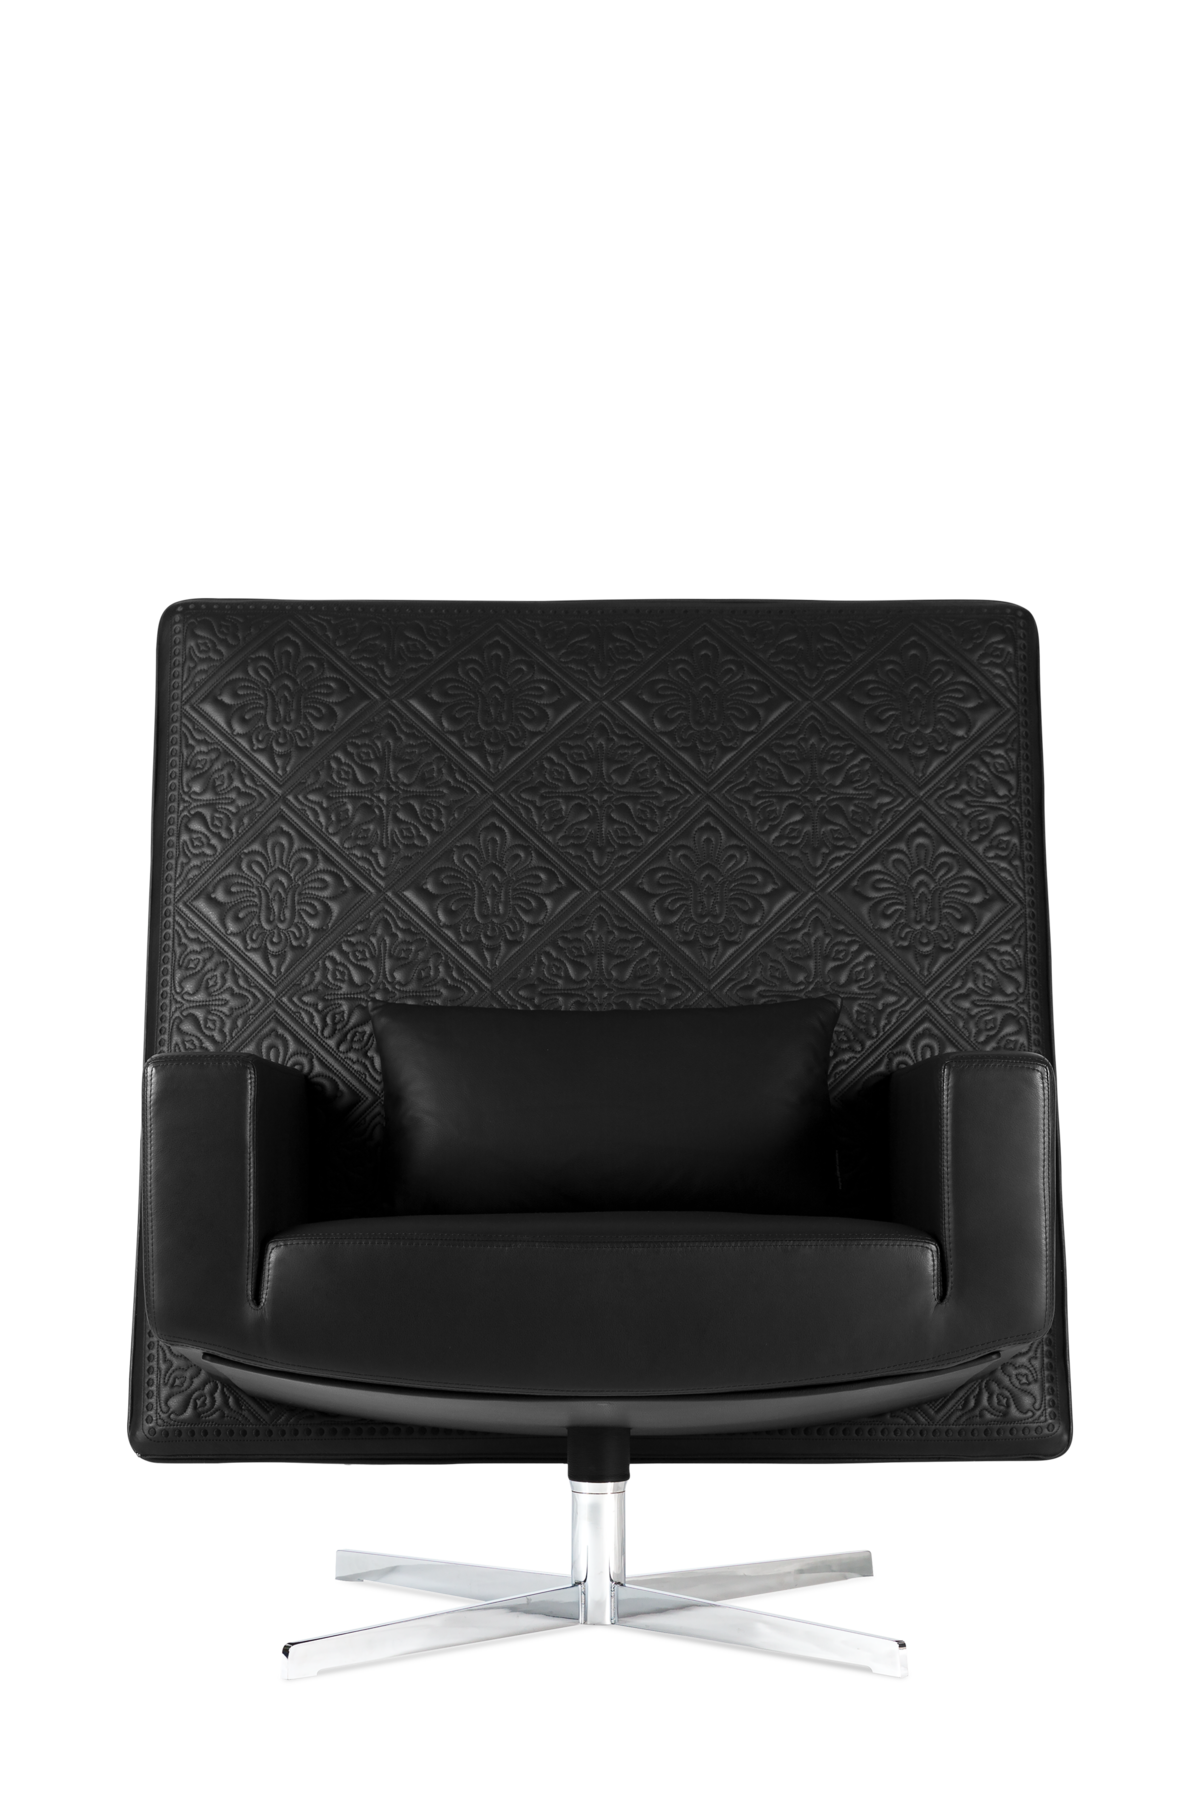 Jackson Chair black leather front side